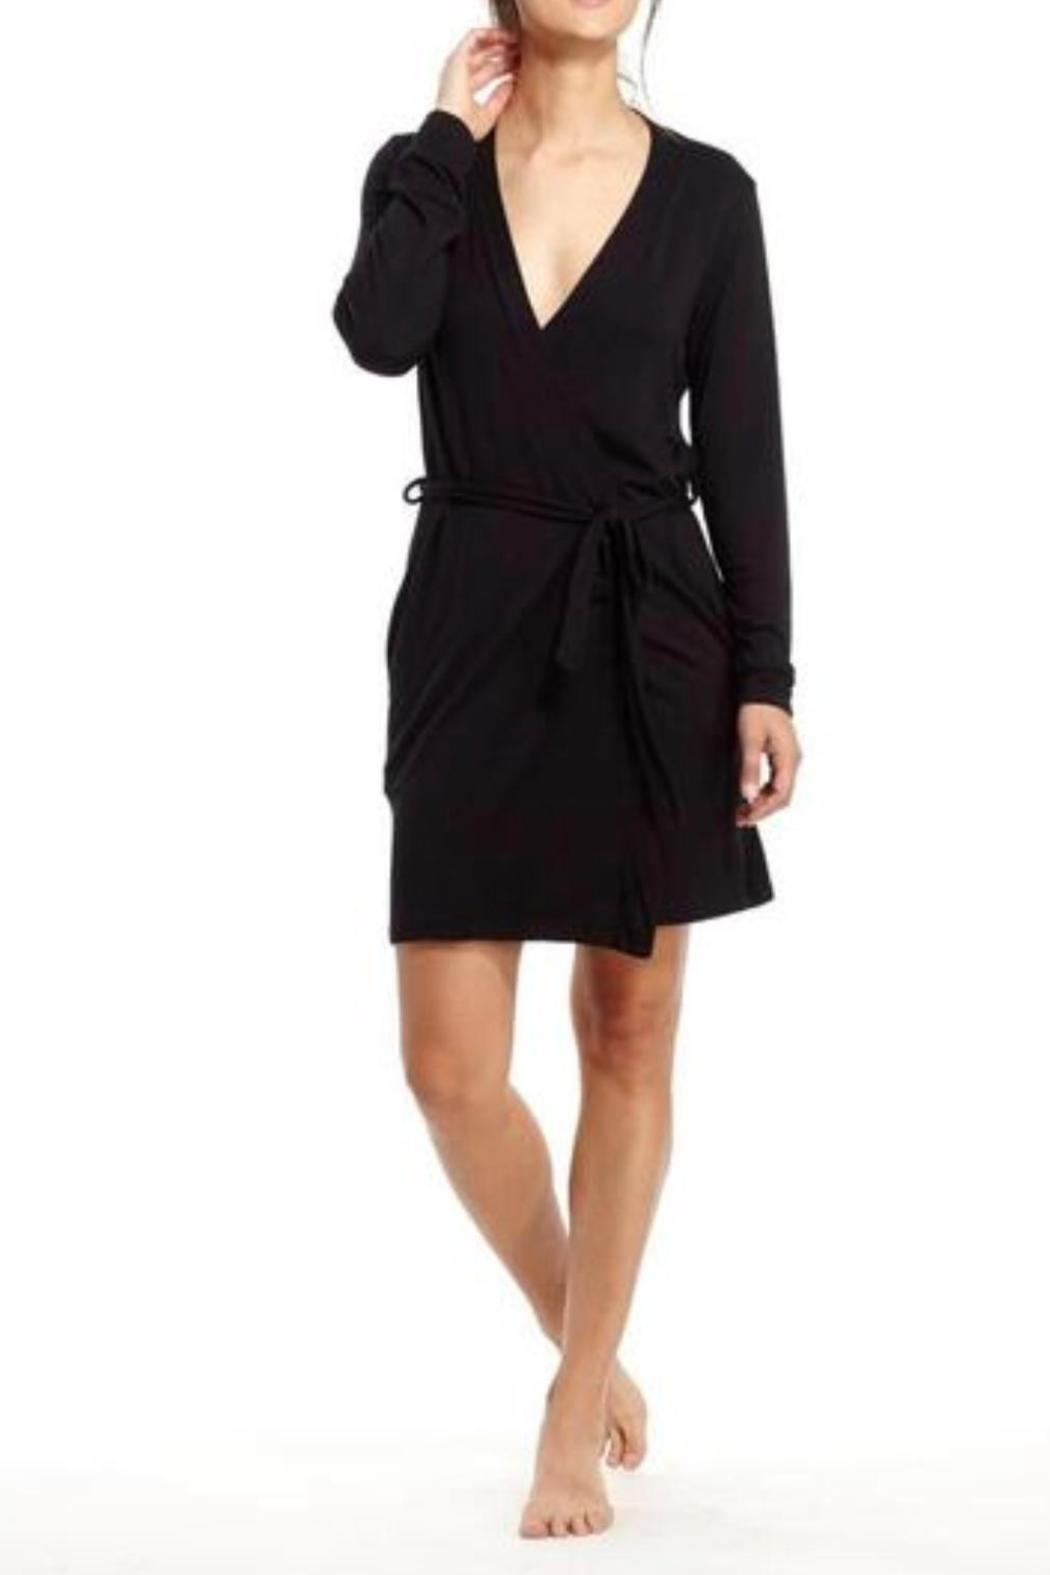 For bed, bath or casual lounging, wrap yourself in pure comfort with the Embroidered Luxury Fleece Robe in Black. This kimono style robe can be custom embroidered with a first name or single initial in a variety of thread colors and 2 font options.